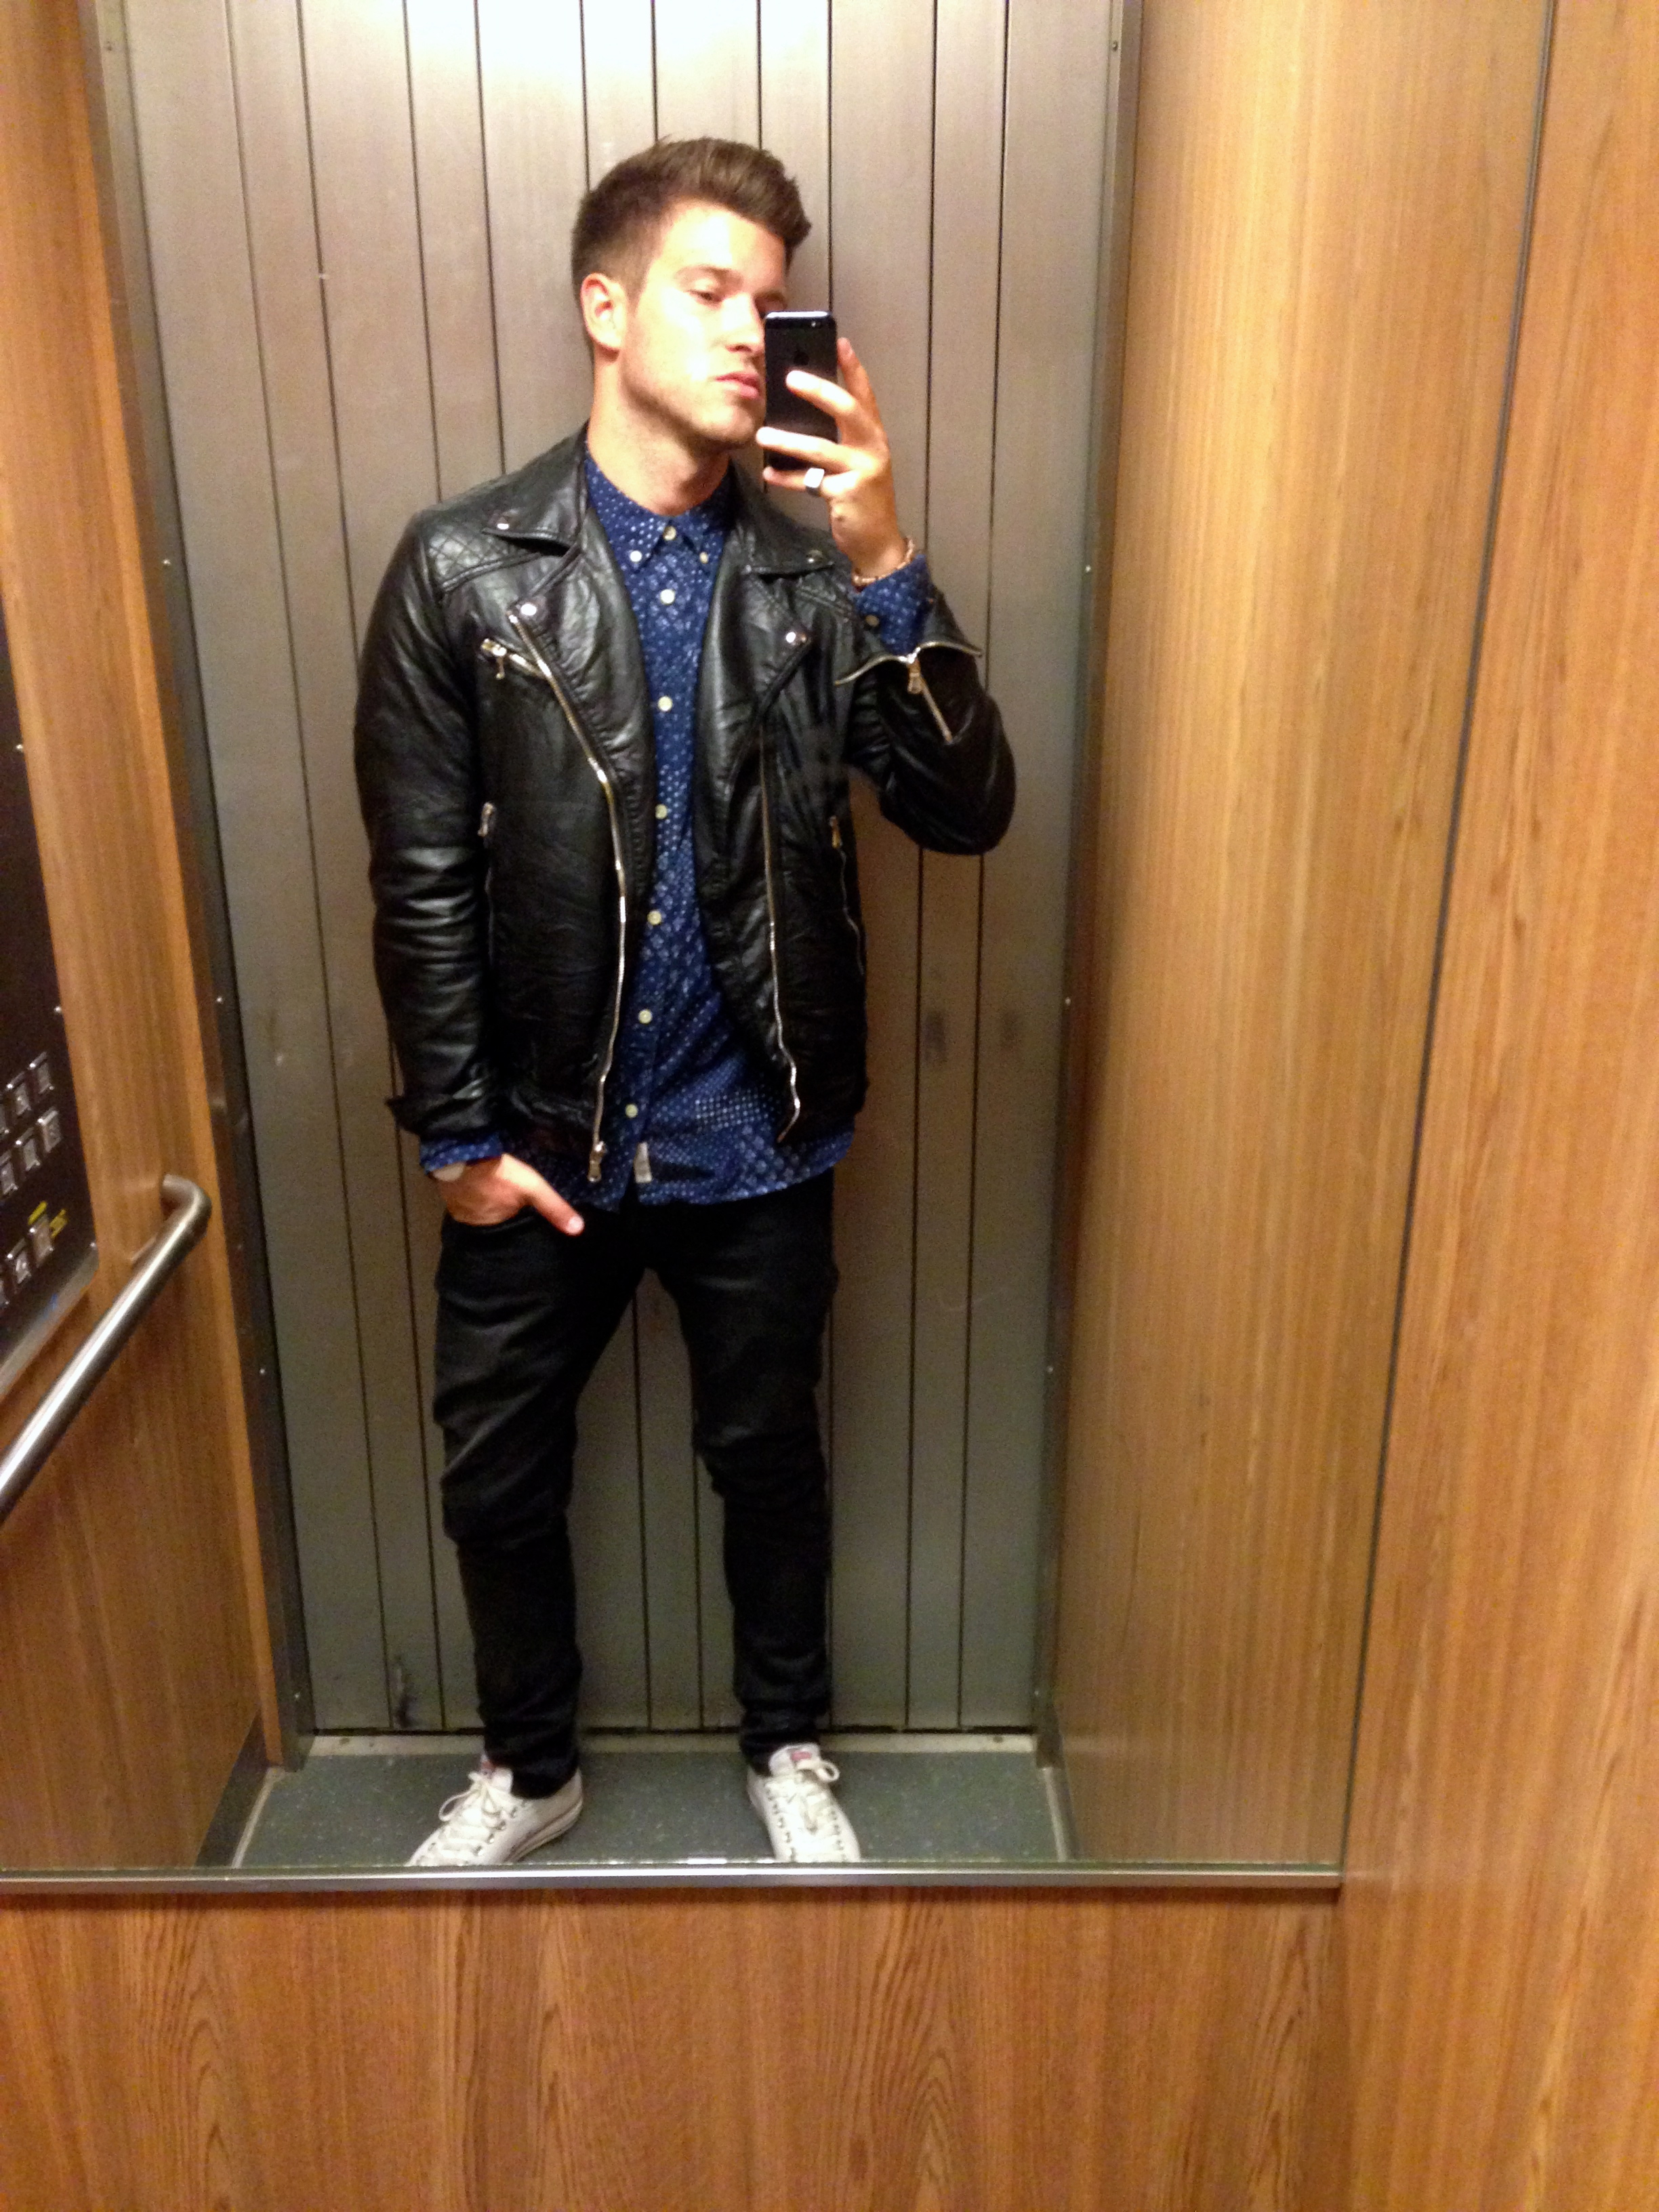 leather jacket for chilly late summer evenings - awesome's essentials